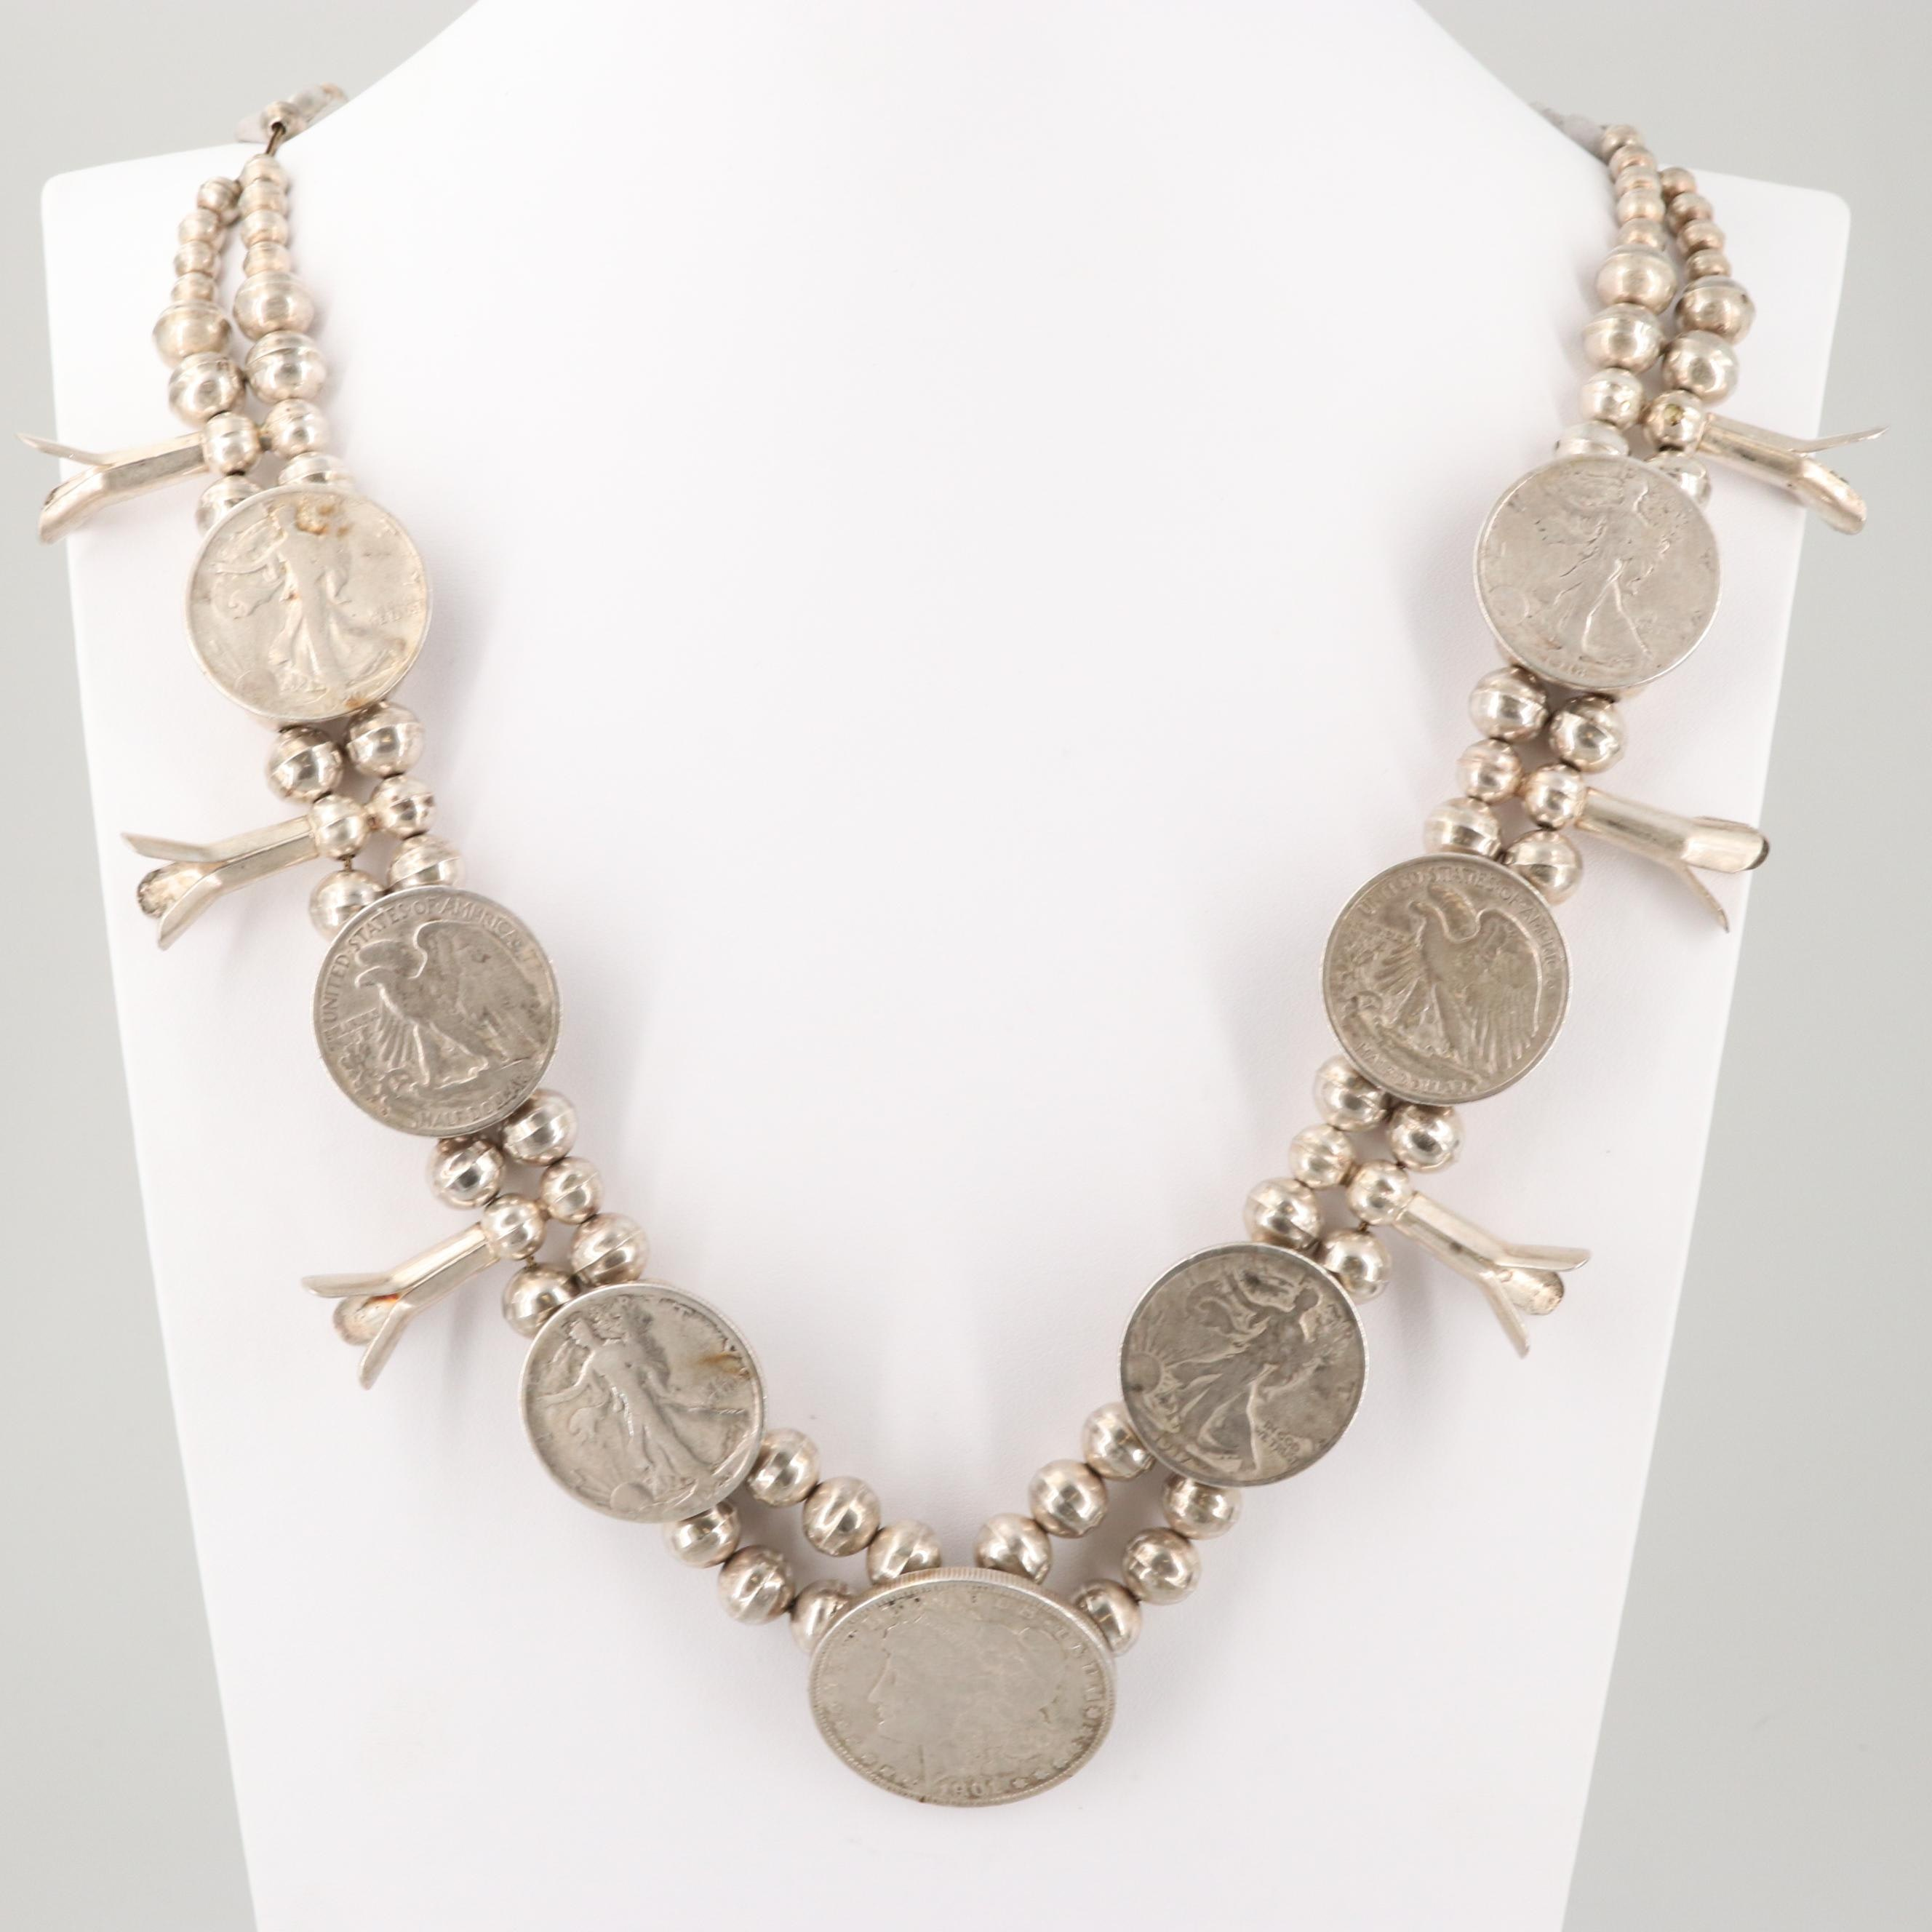 Southwestern Sterling Squash Blossom Necklace with Liberty and Morgan Coins